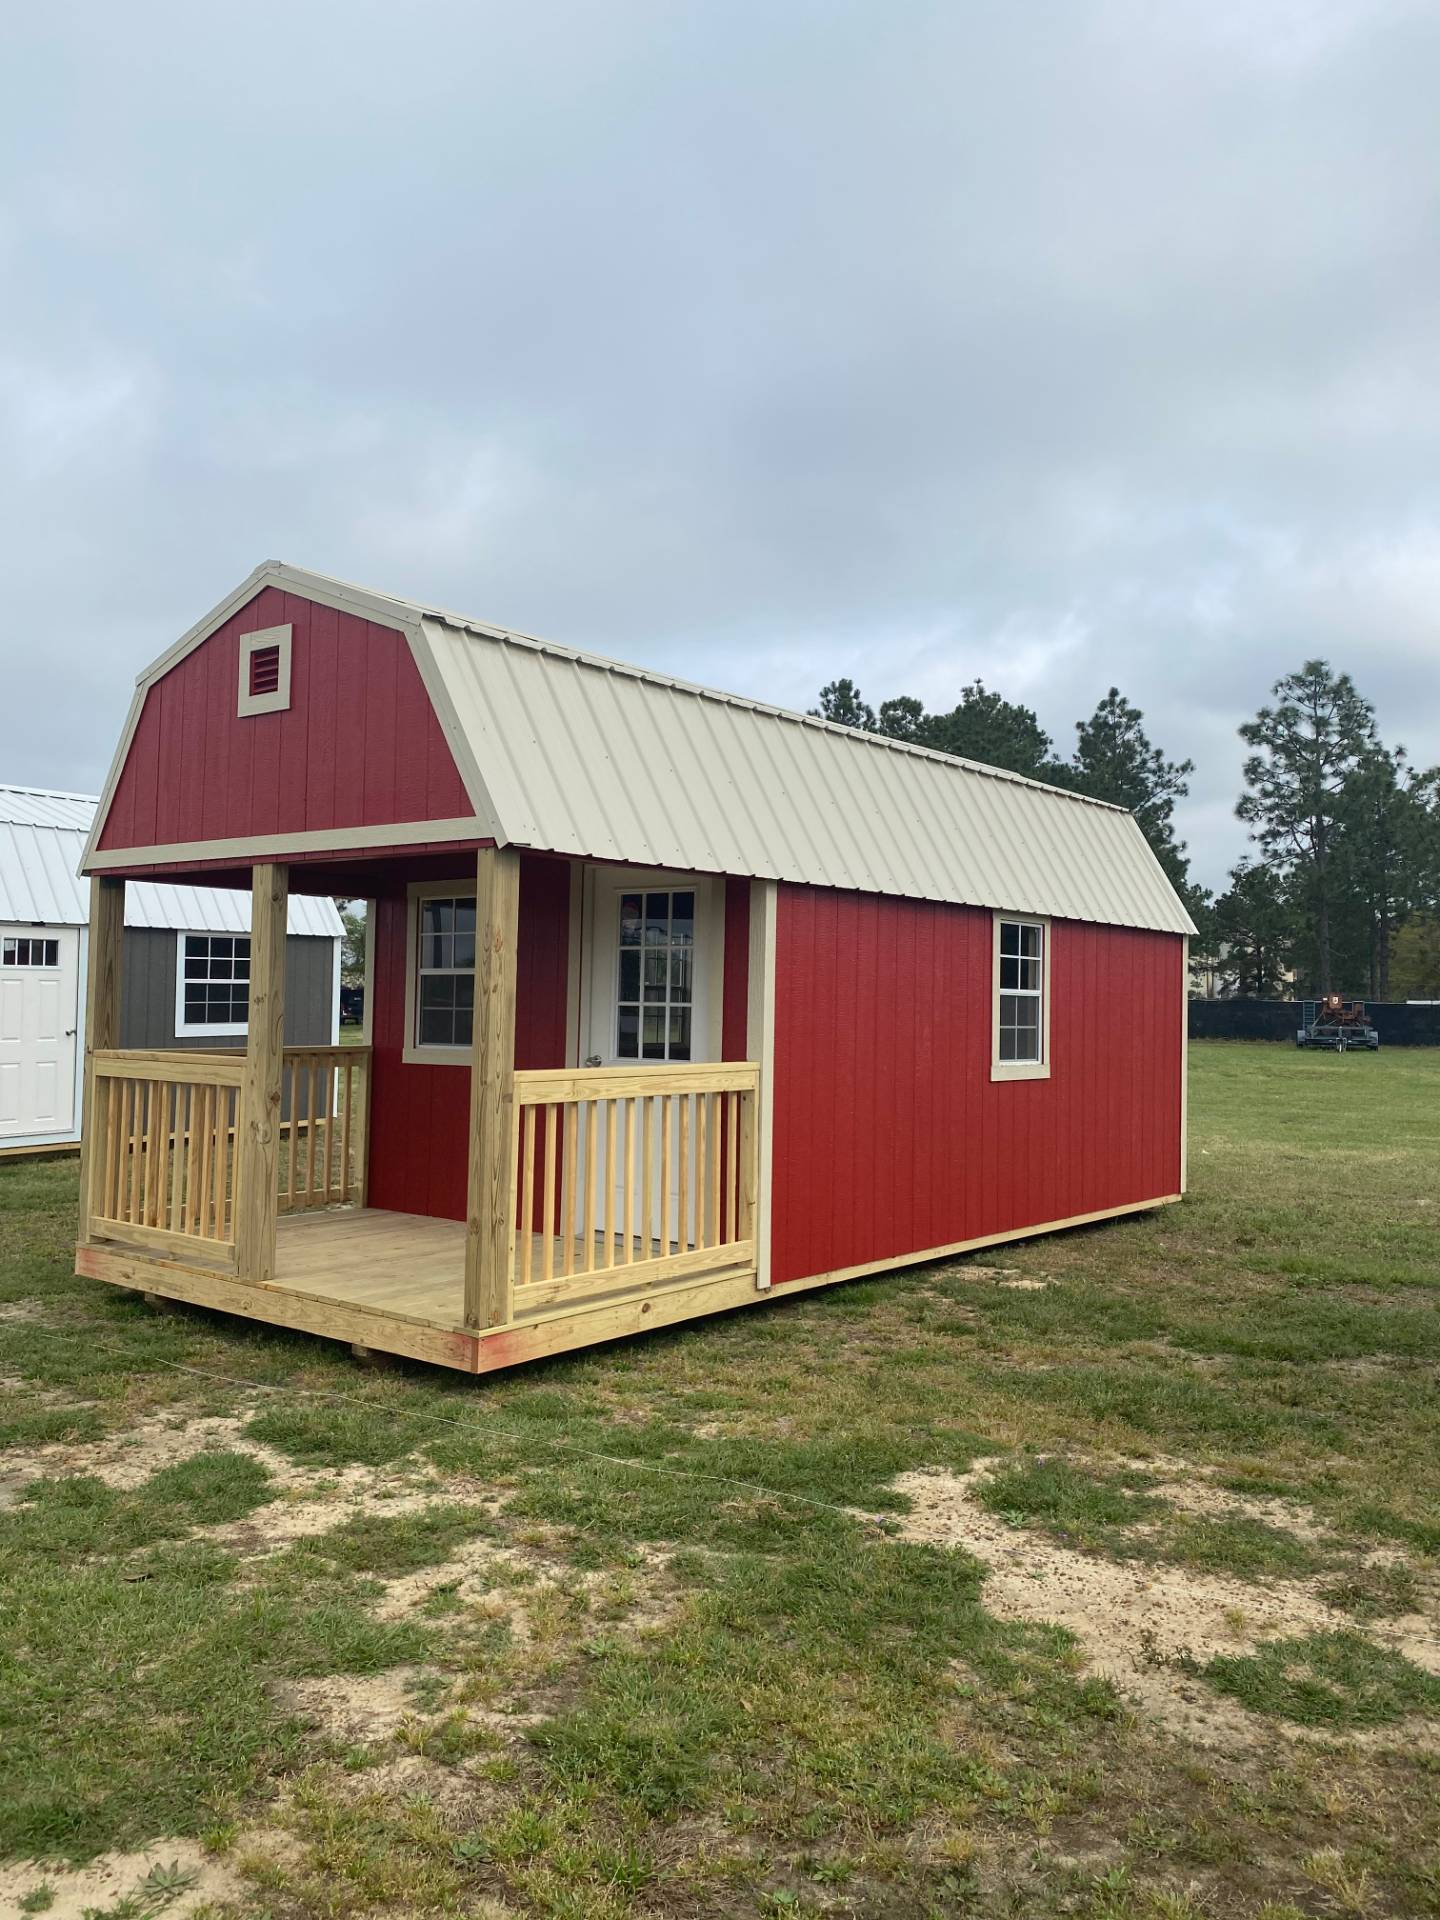 2019 PREMIER PORTABLE BUILDINGS ULBC - URETHANE LOFTED BARN CABIN in Tifton, Georgia - Photo 2